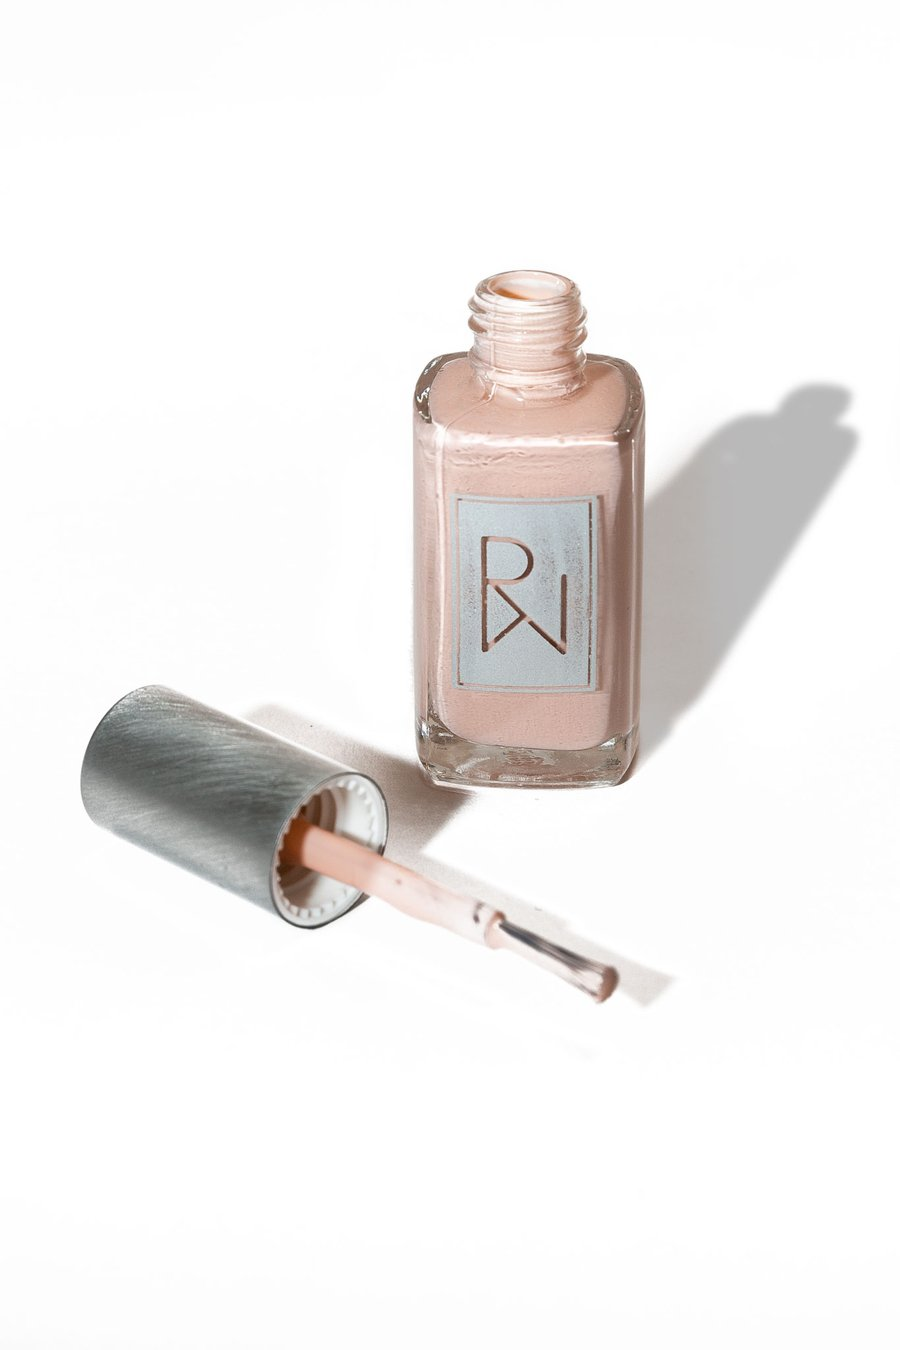 Rooted Woman - Vulnérable - Vernis à ongles bio rose nude